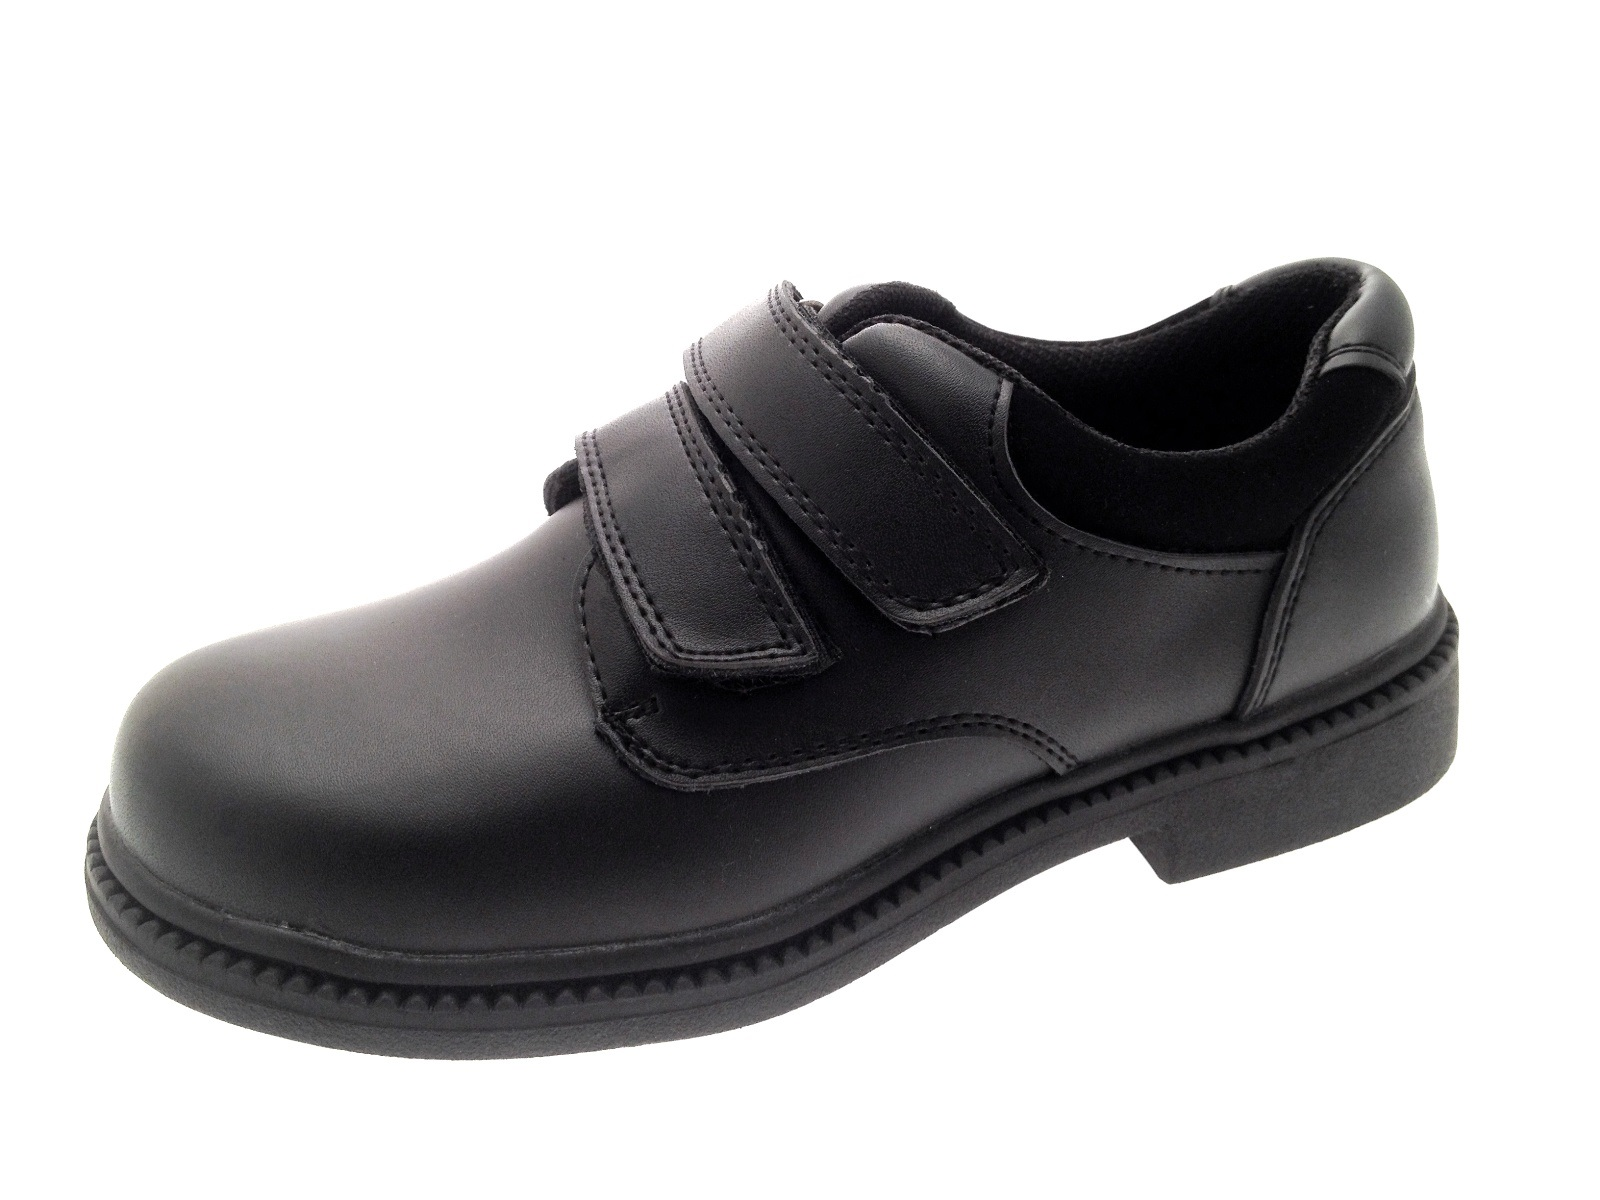 c154c7a4f6 Kids Boys Black Leather School Shoes Lace Up Slip On Sports Trainers ...